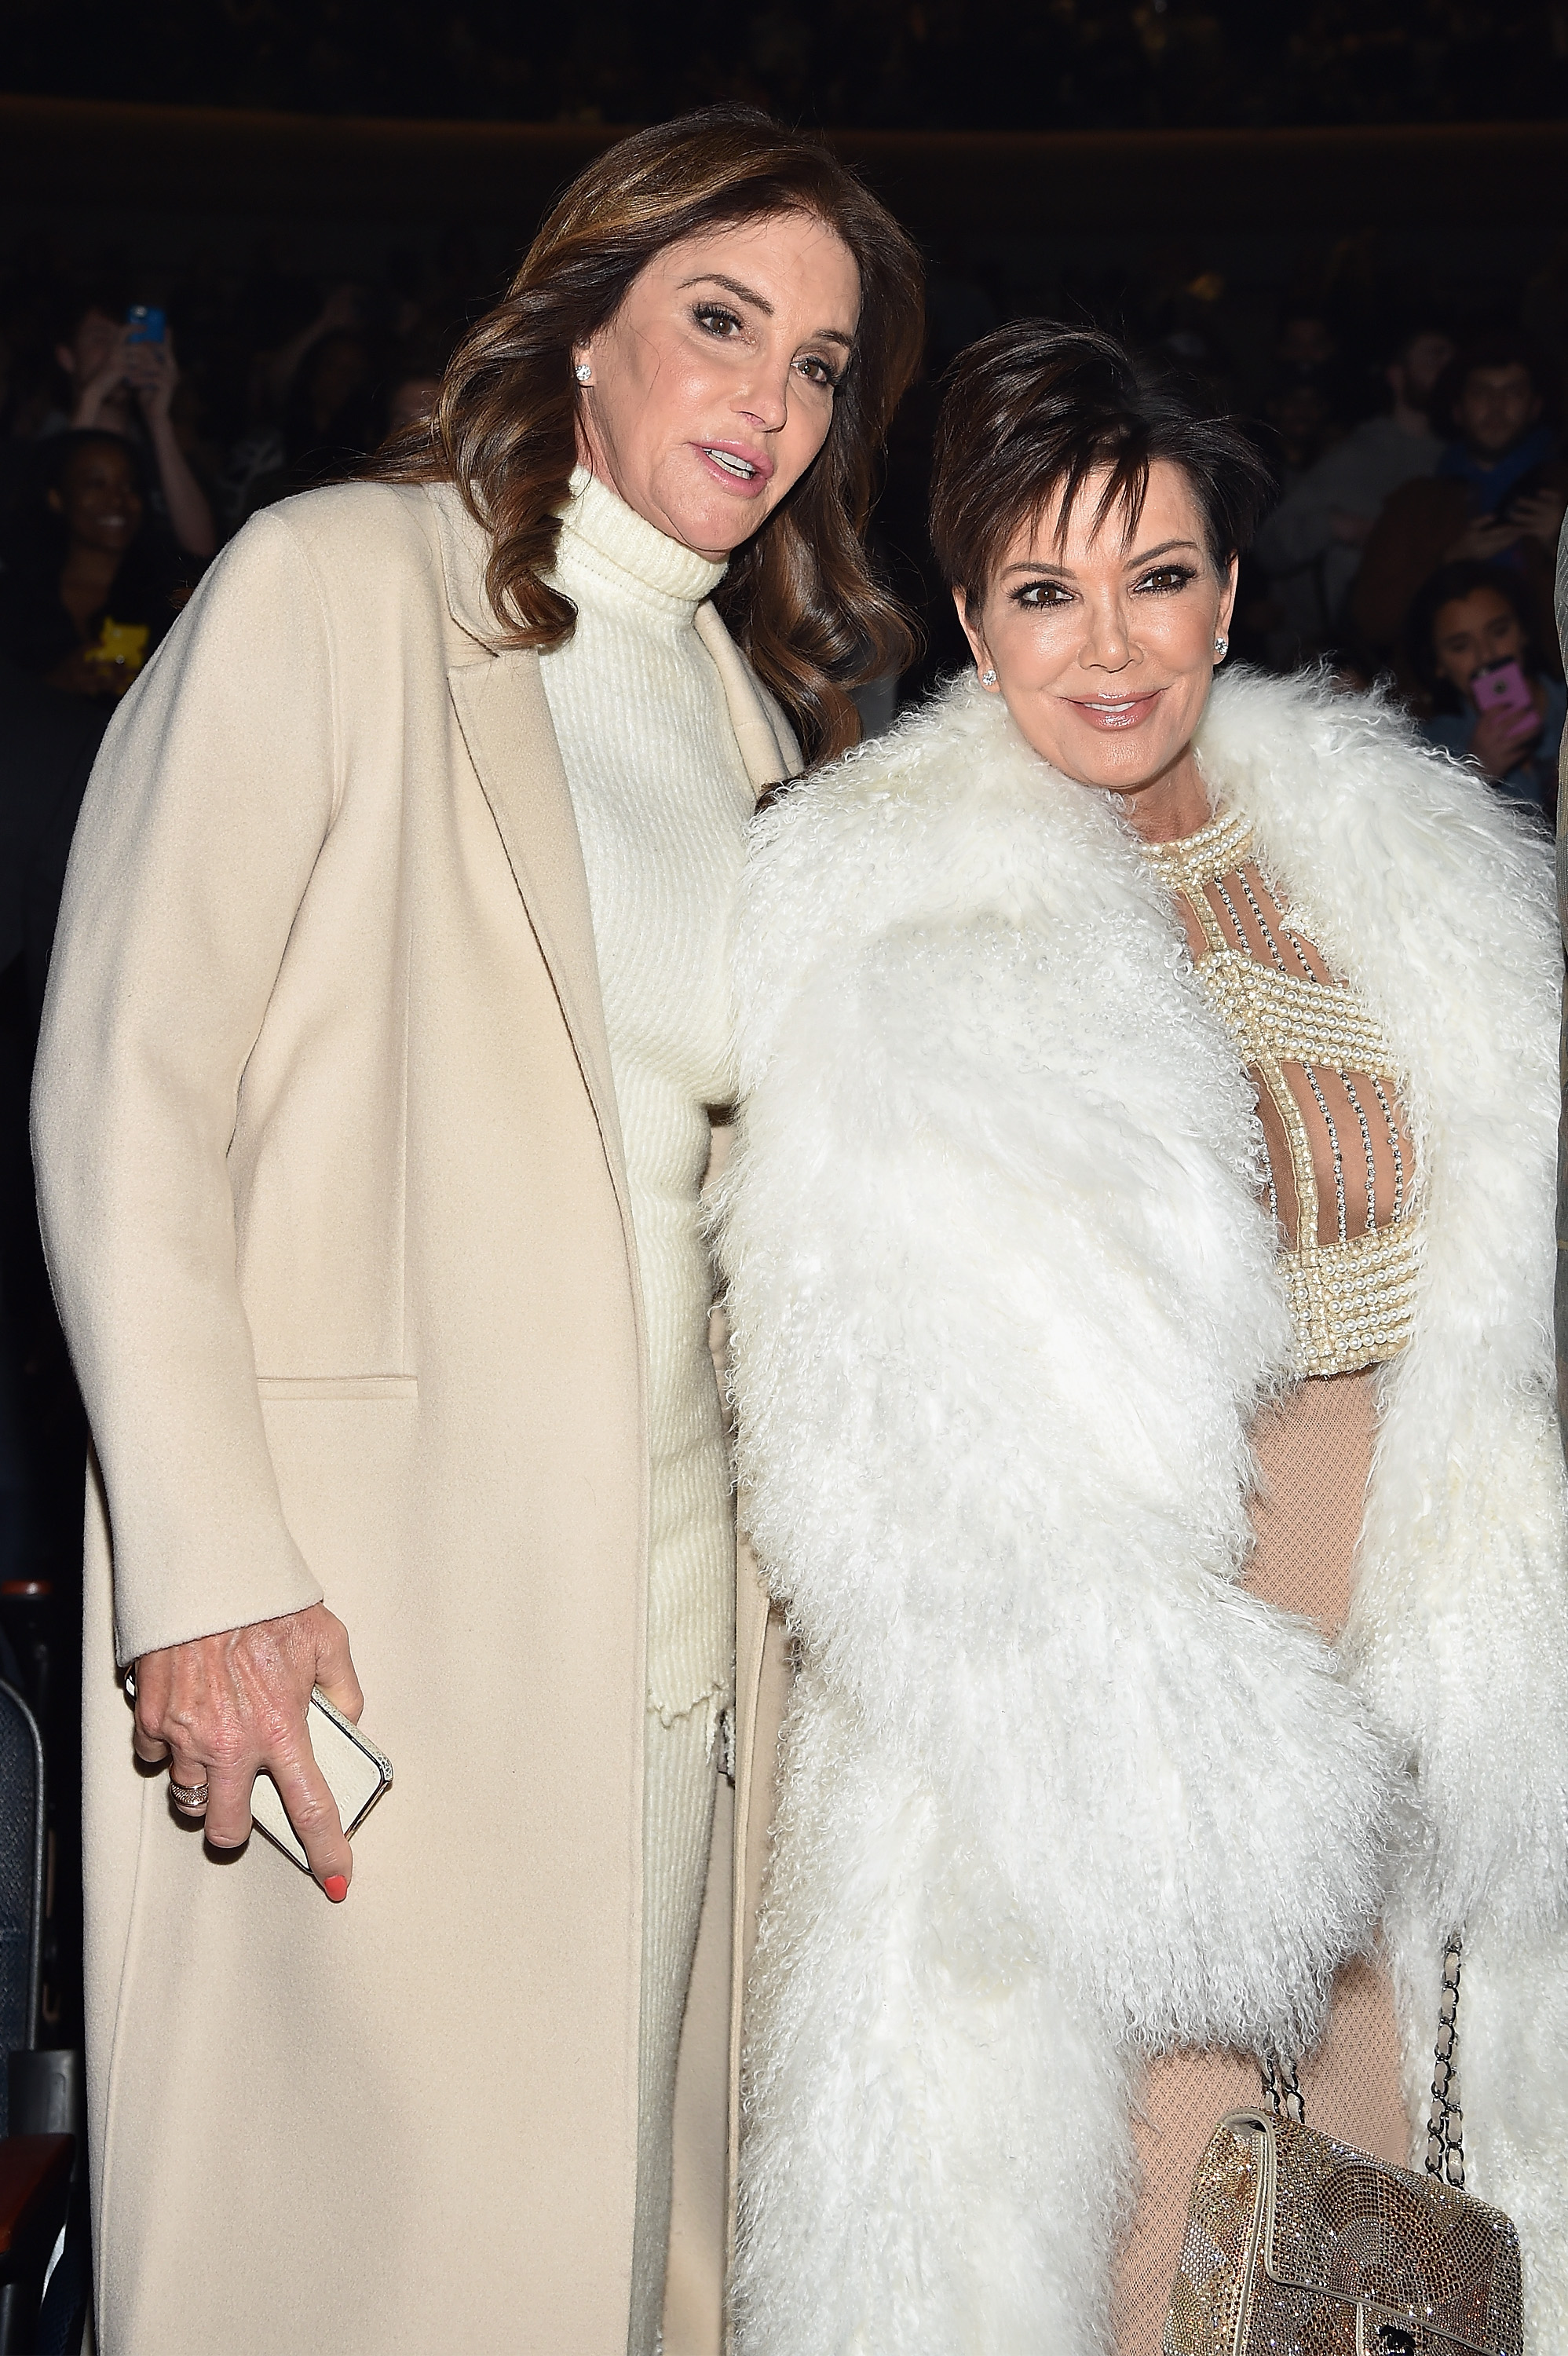 Caitlyn Jenner (L) and Kris Jenner attend Kanye West Yeezy Season 3 on February 11, 2016, in New York City (Source: Getty Images)